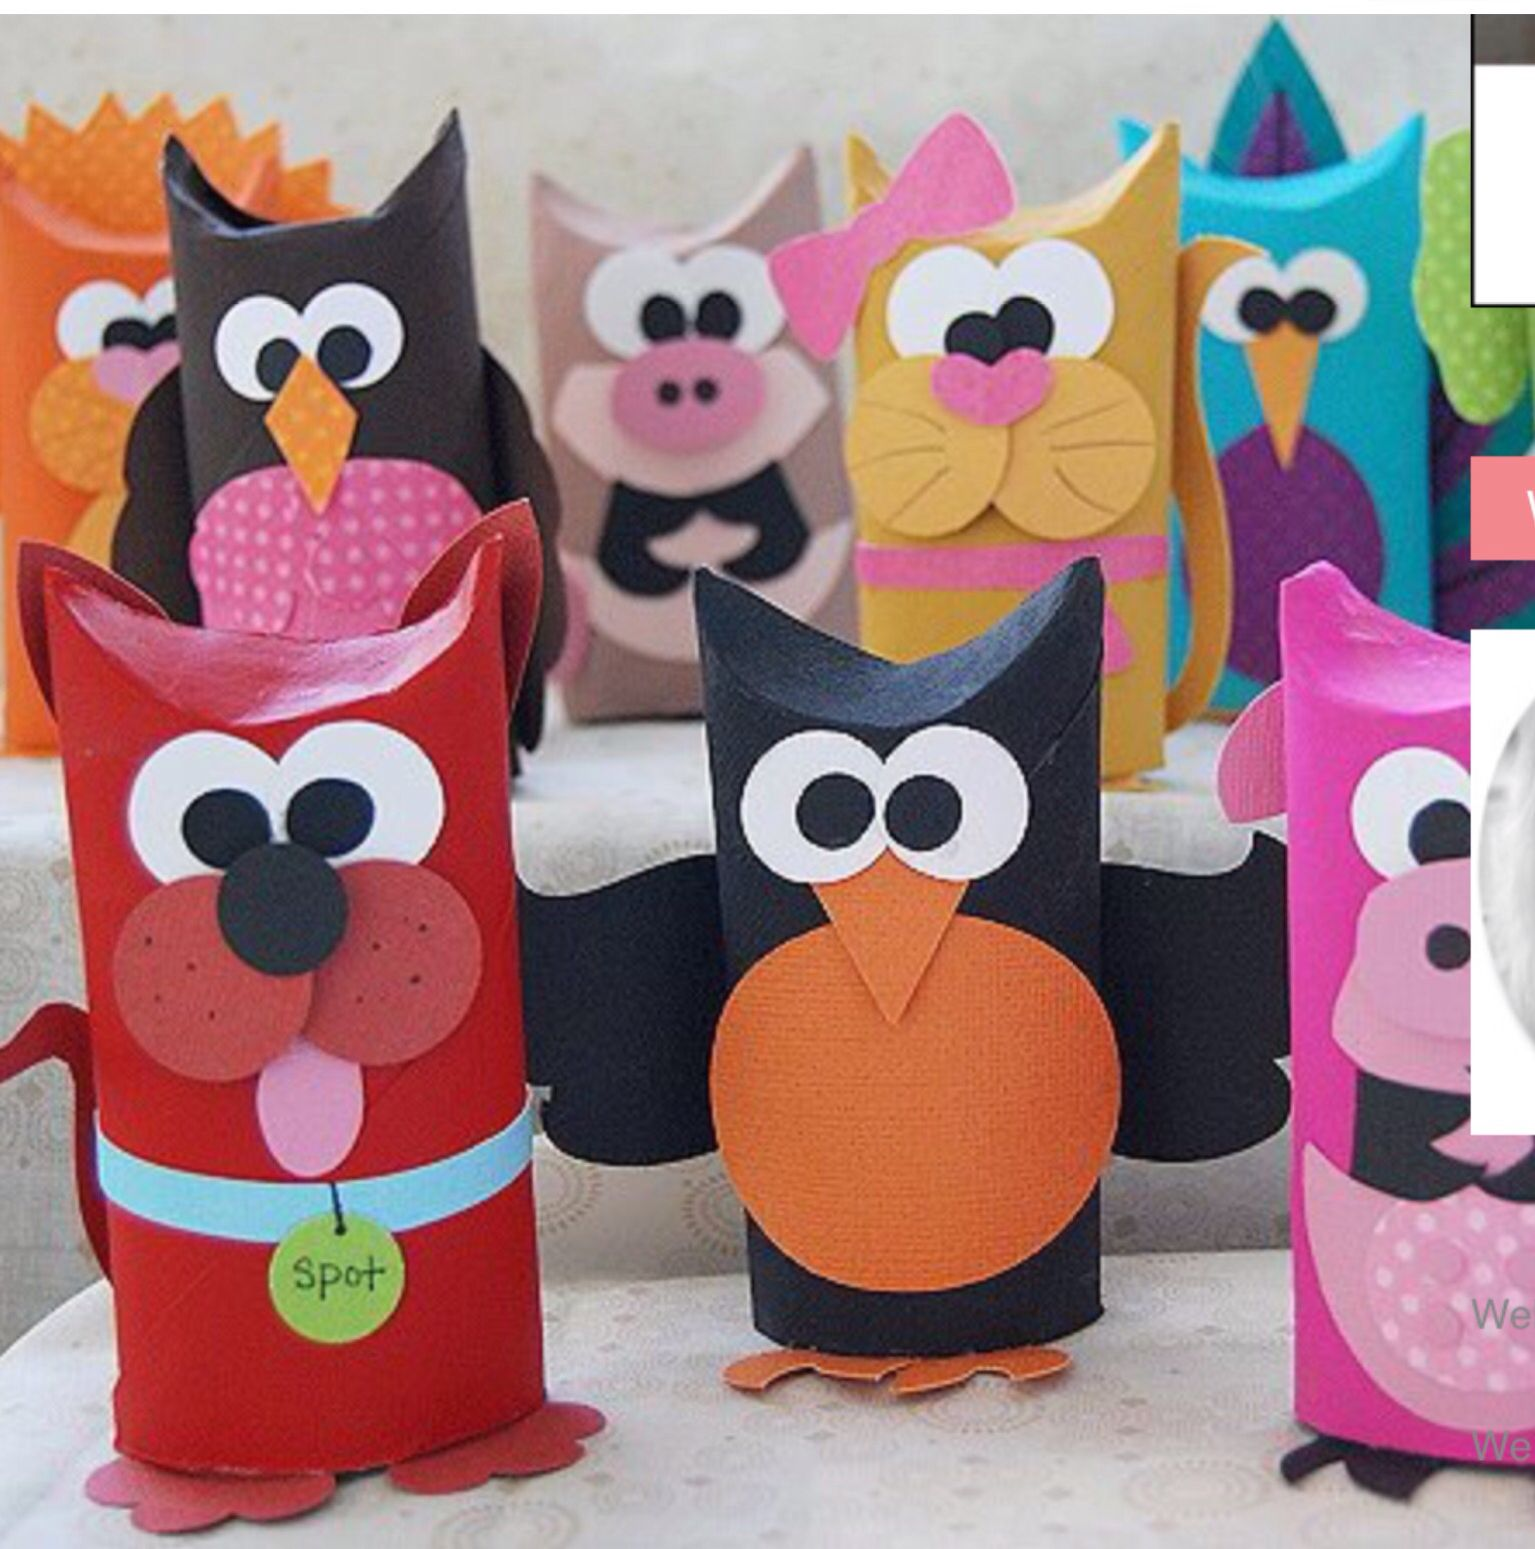 Vaak Super Cute Toilet Paper Roll Animals | Crafts | Knutselen wc rol @FC43